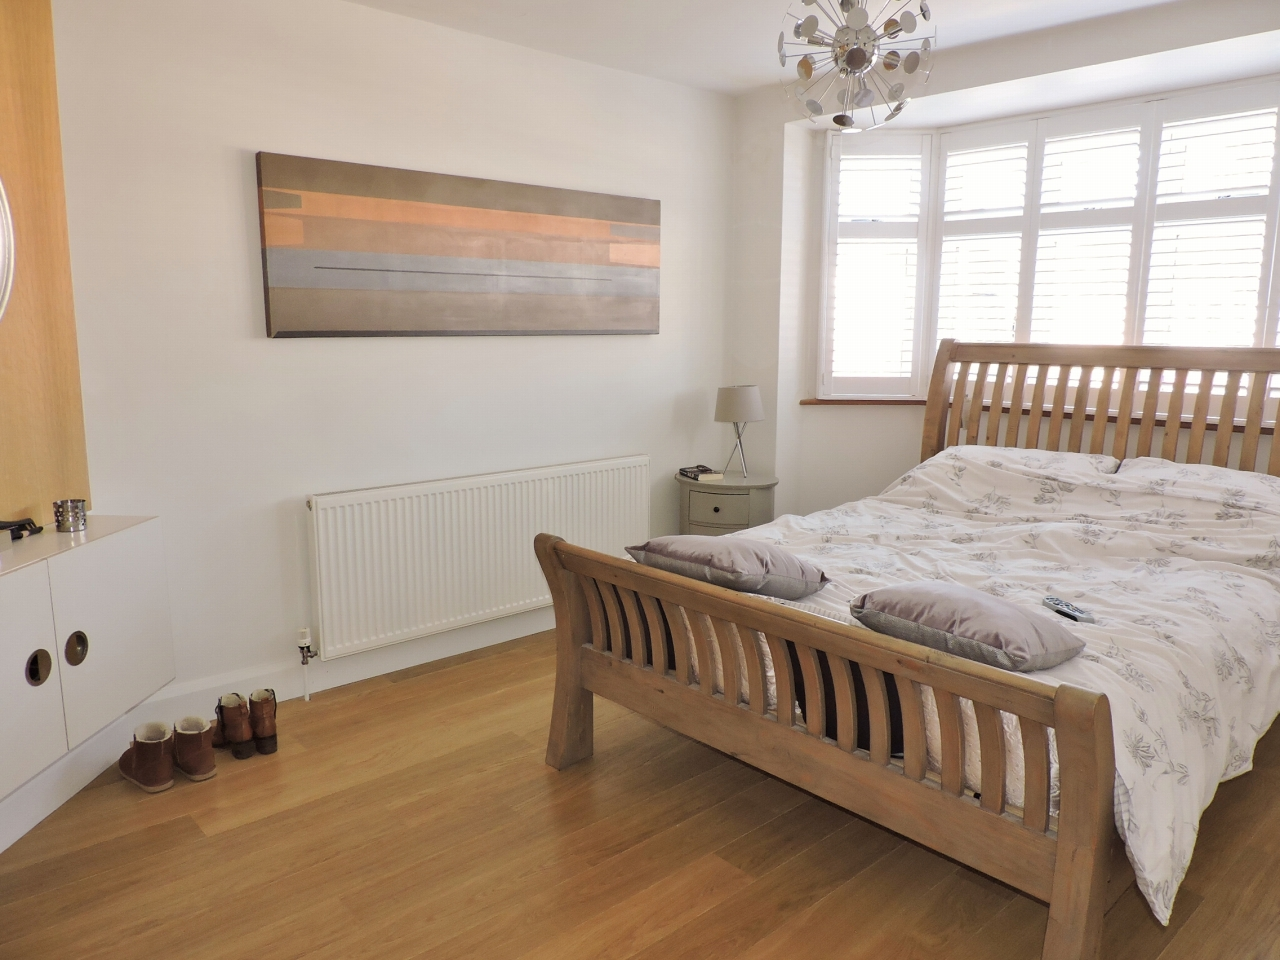 3 bedroom semi-detached house SSTC in New Malden - Photograph 11